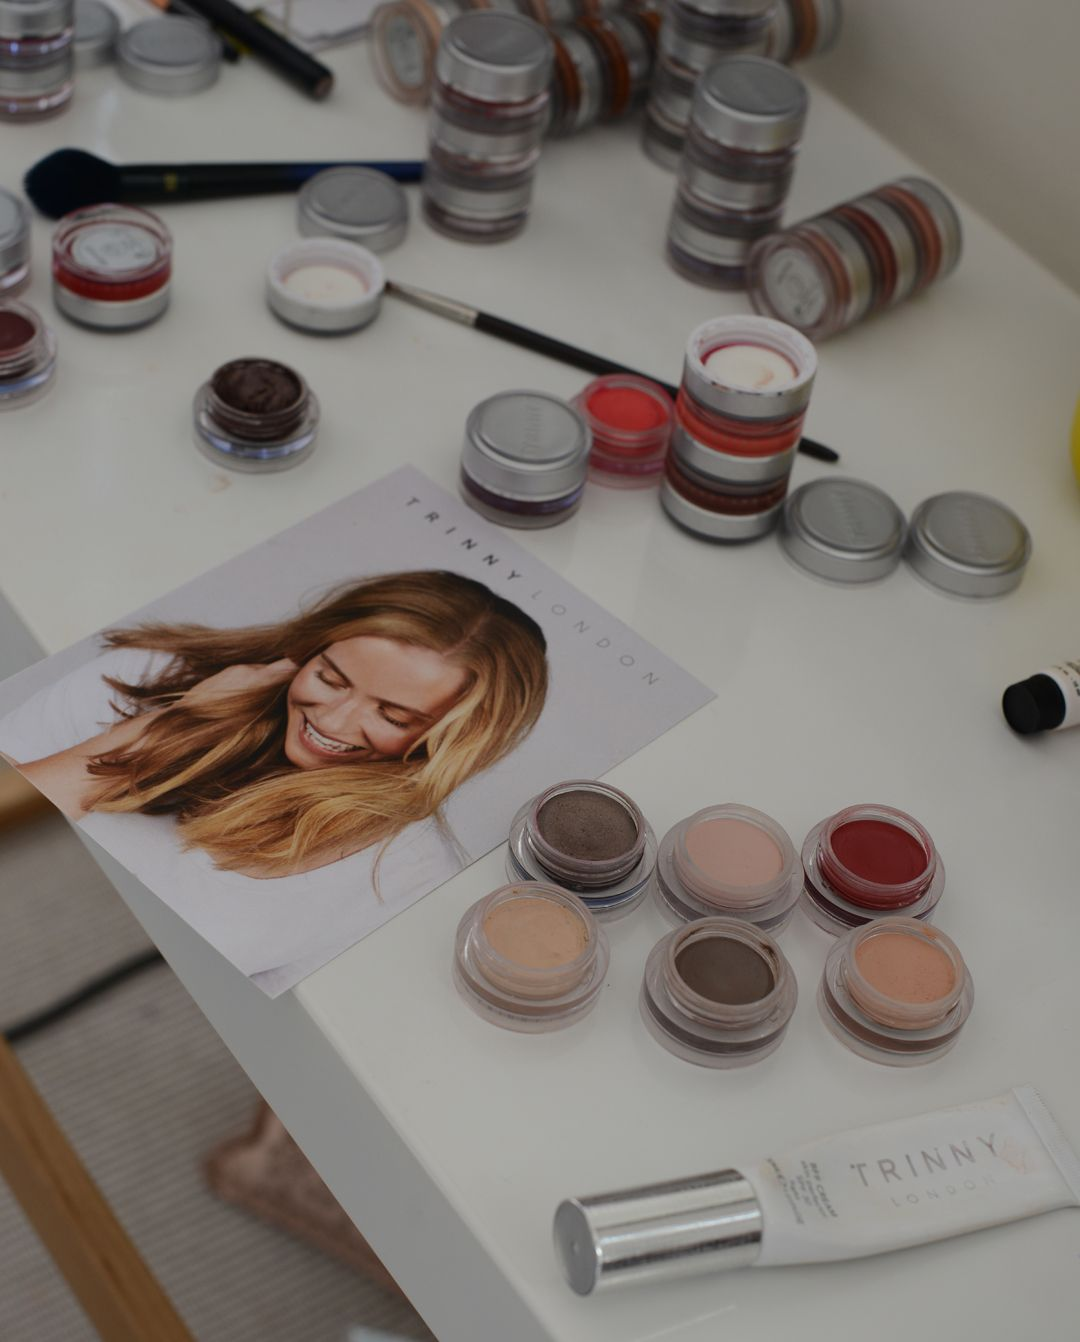 Trinny London Makeup To Love (With images) London